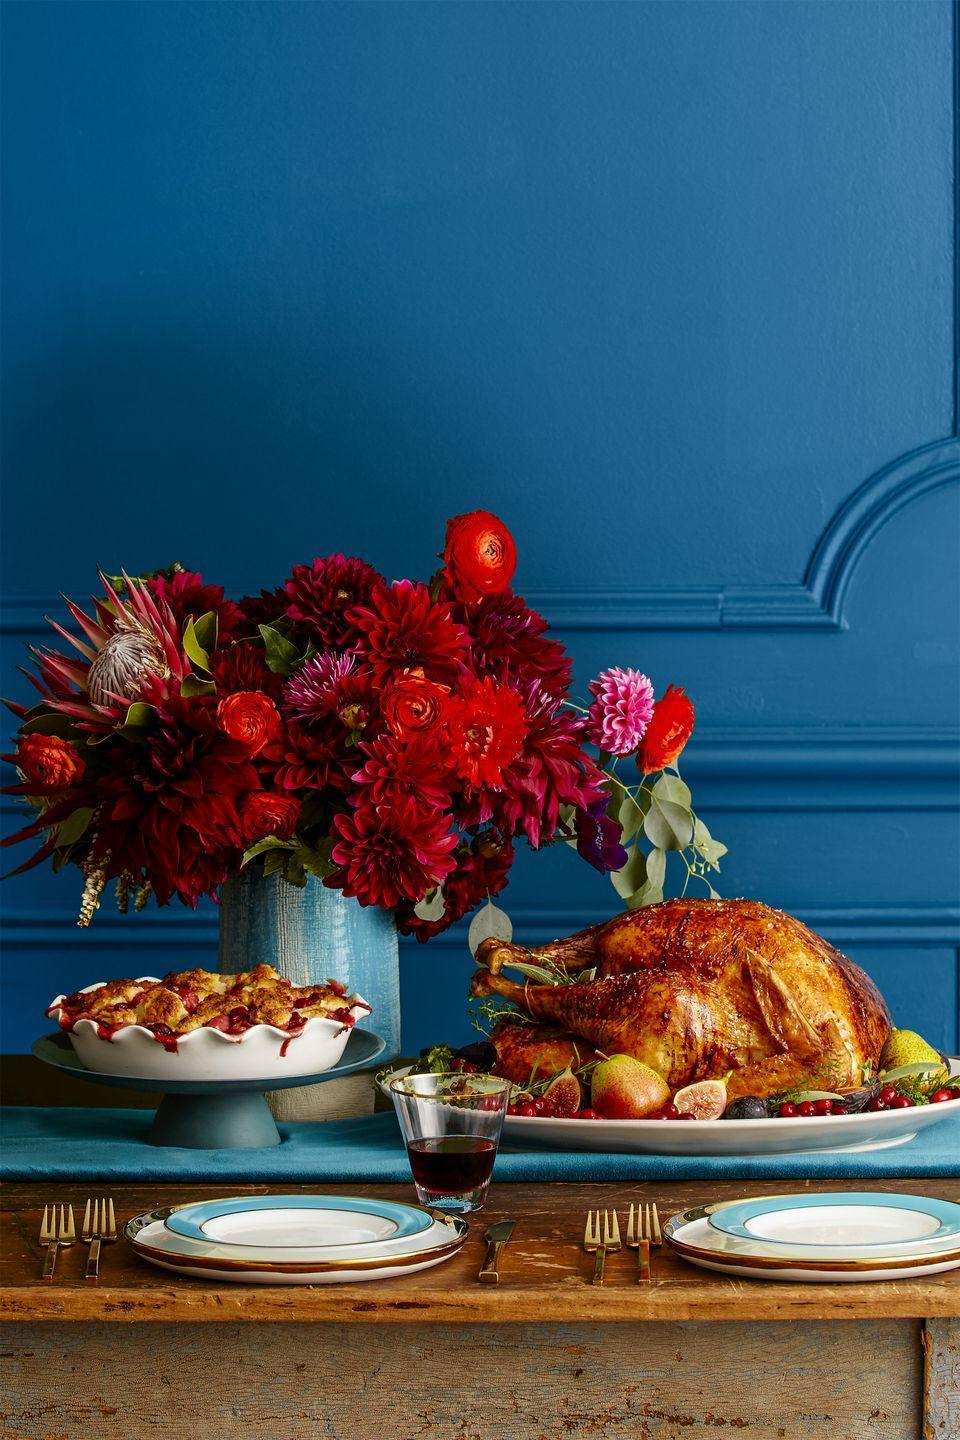 "<p>With this striking arrangement of dahlias, roses, and ranunculus, the <a href=""https://www.goodhousekeeping.com/holidays/thanksgiving-ideas/g112/cranberry-sauce-recipes/"" rel=""nofollow noopener"" target=""_blank"" data-ylk=""slk:cranberry sauce"" class=""link rapid-noclick-resp"">cranberry sauce</a> won't be the most colorful part of your Thanksgiving spread. Place all of them in a complementary vase for an added pop of color. </p>"